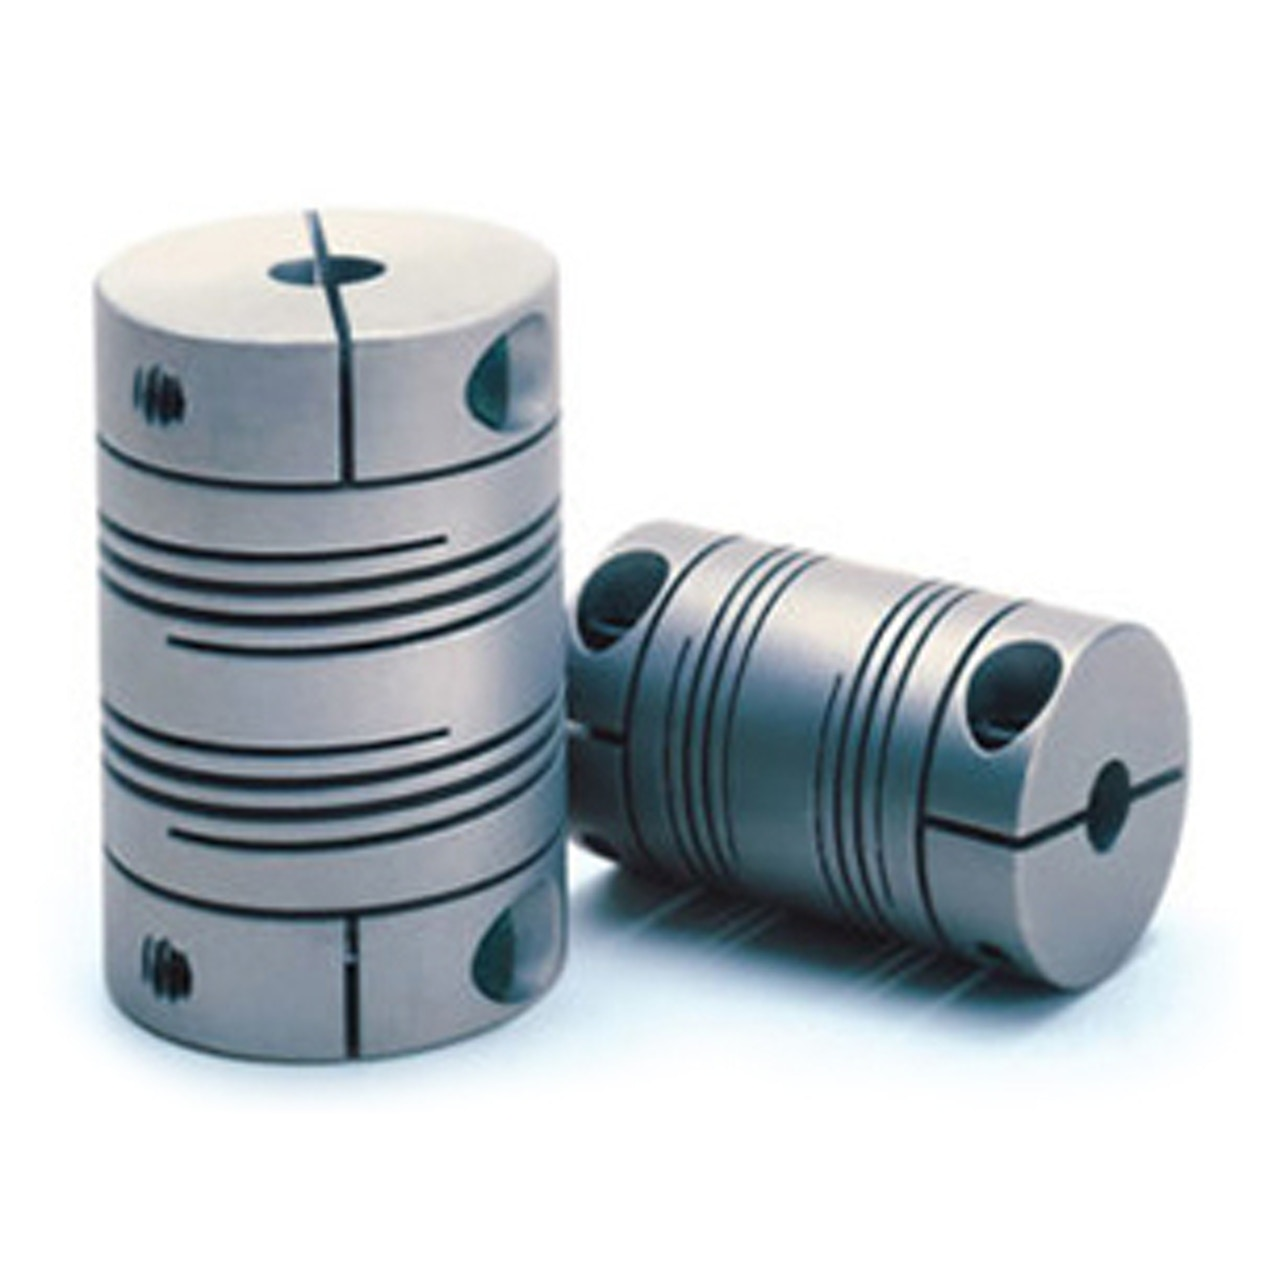 Beam Coupling A Series